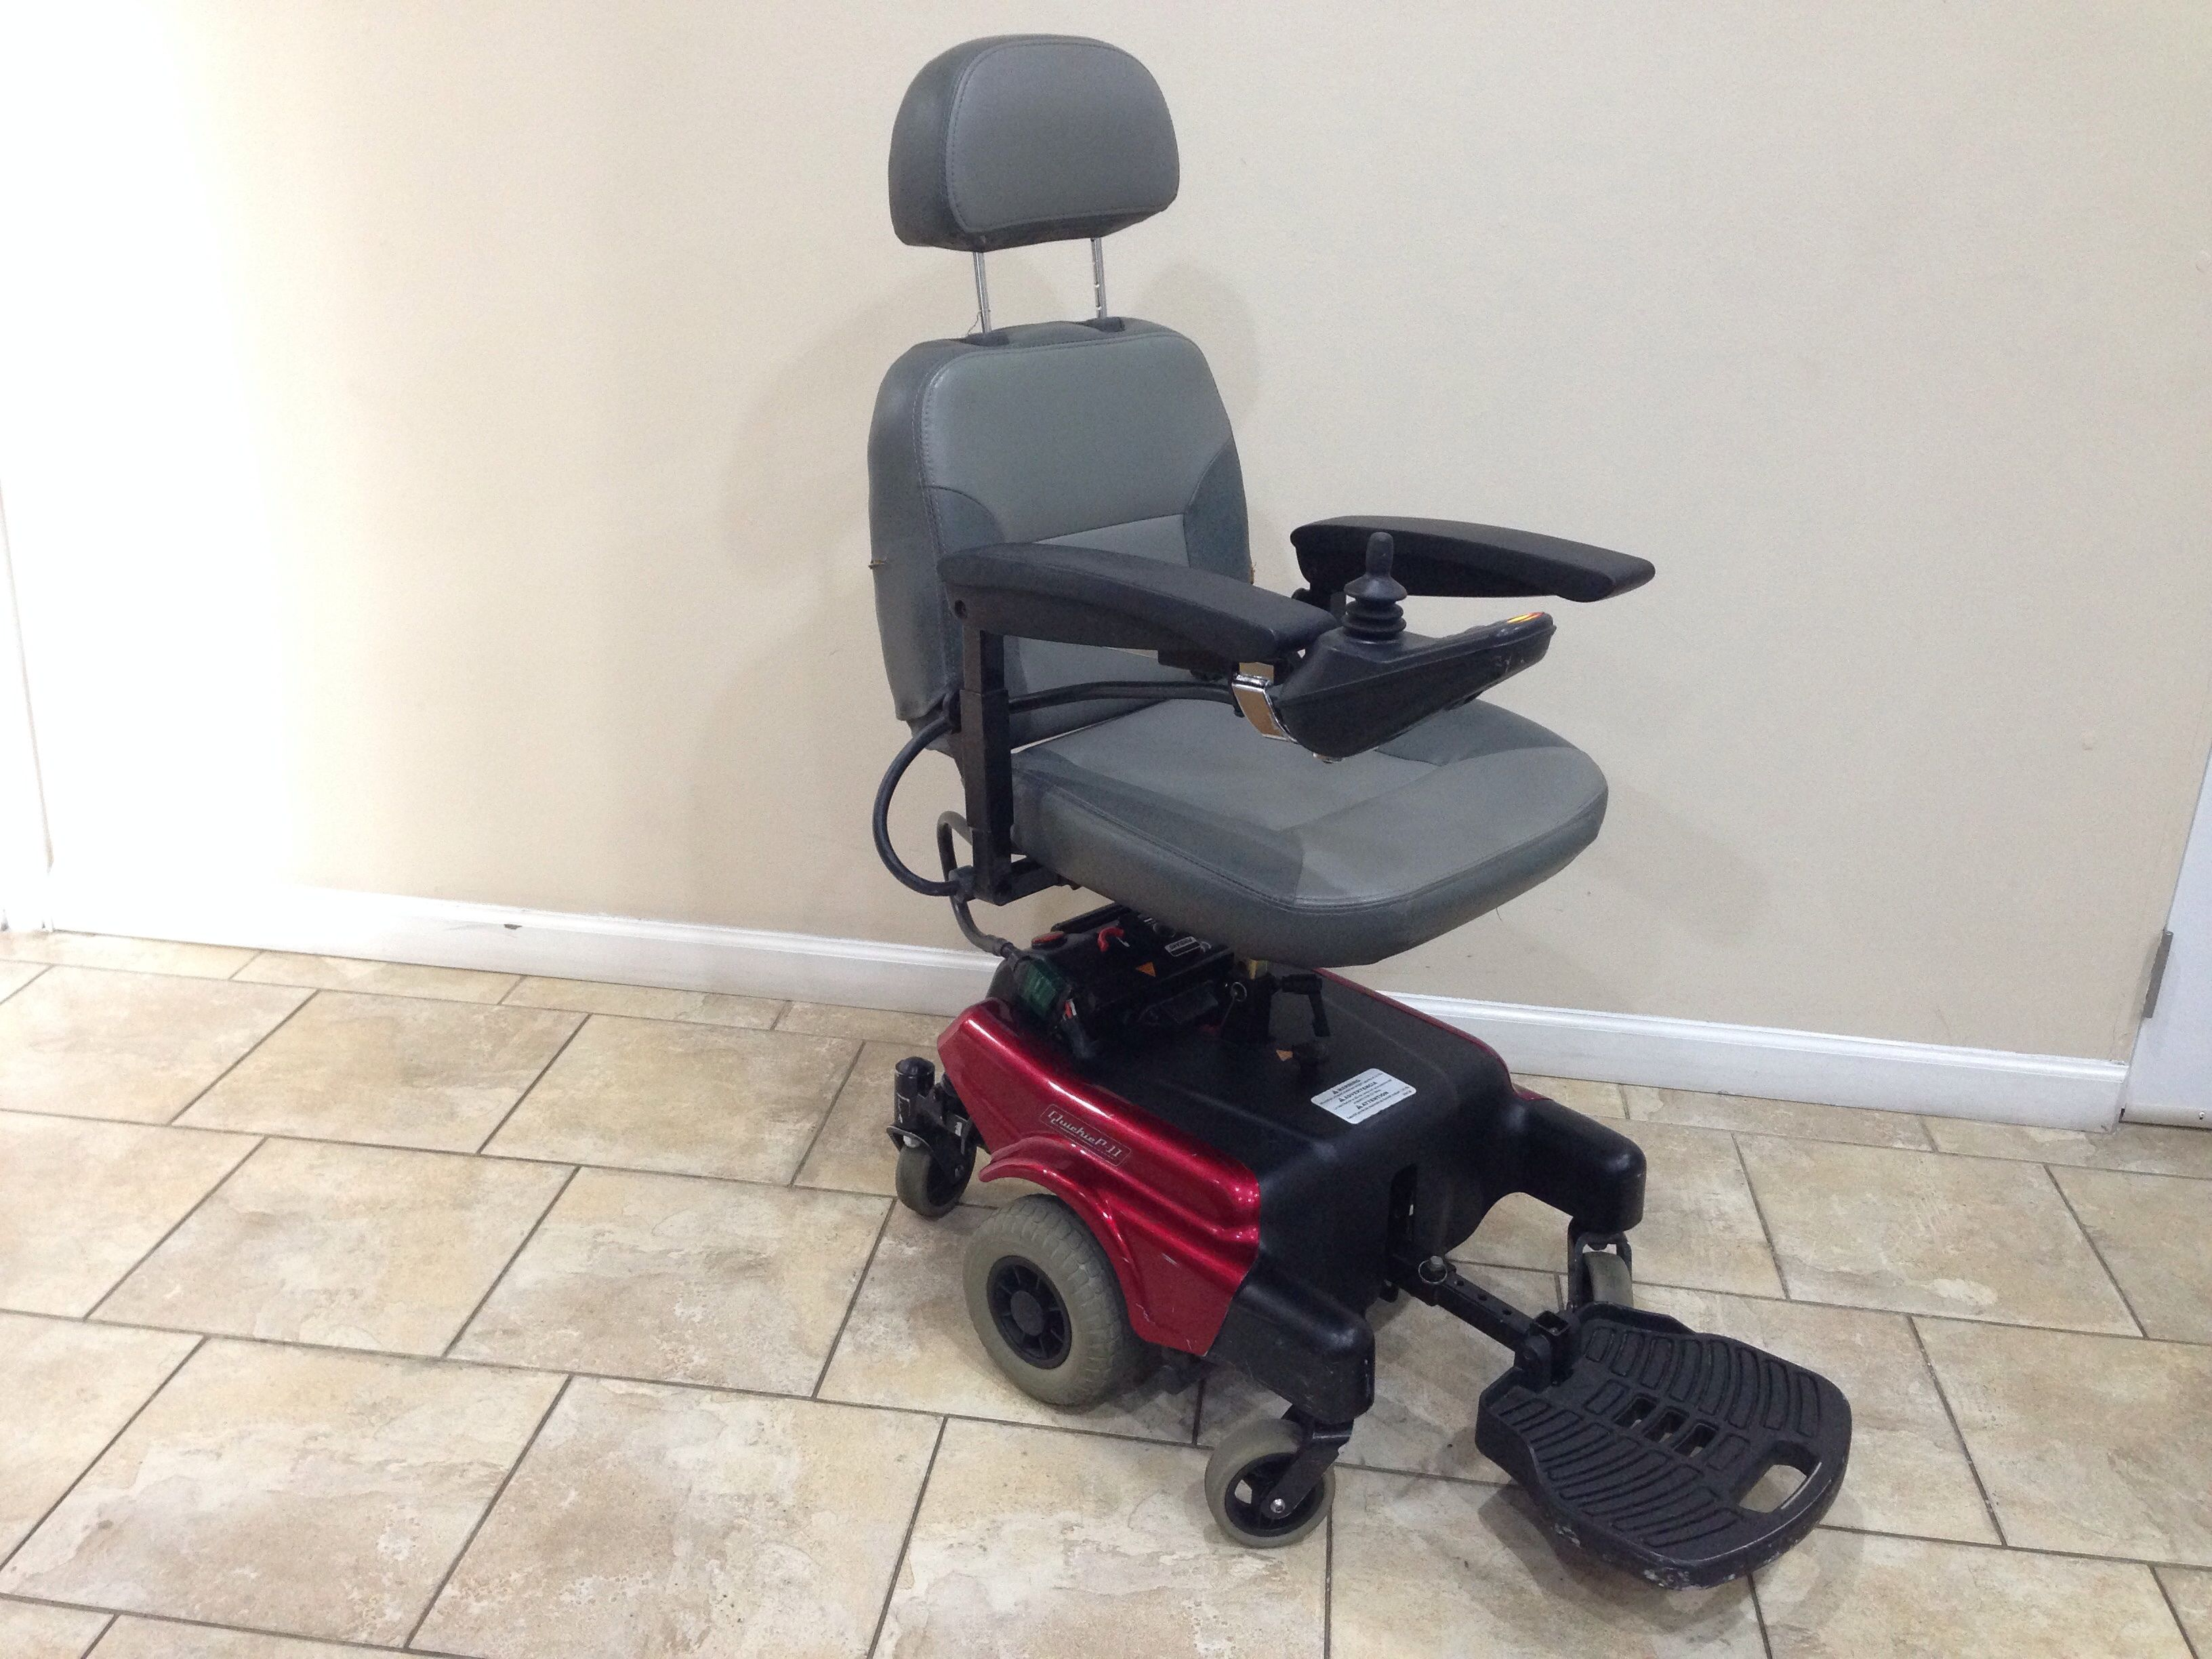 Quickie P11 Power Chair By Sunrise Medical (Used) For